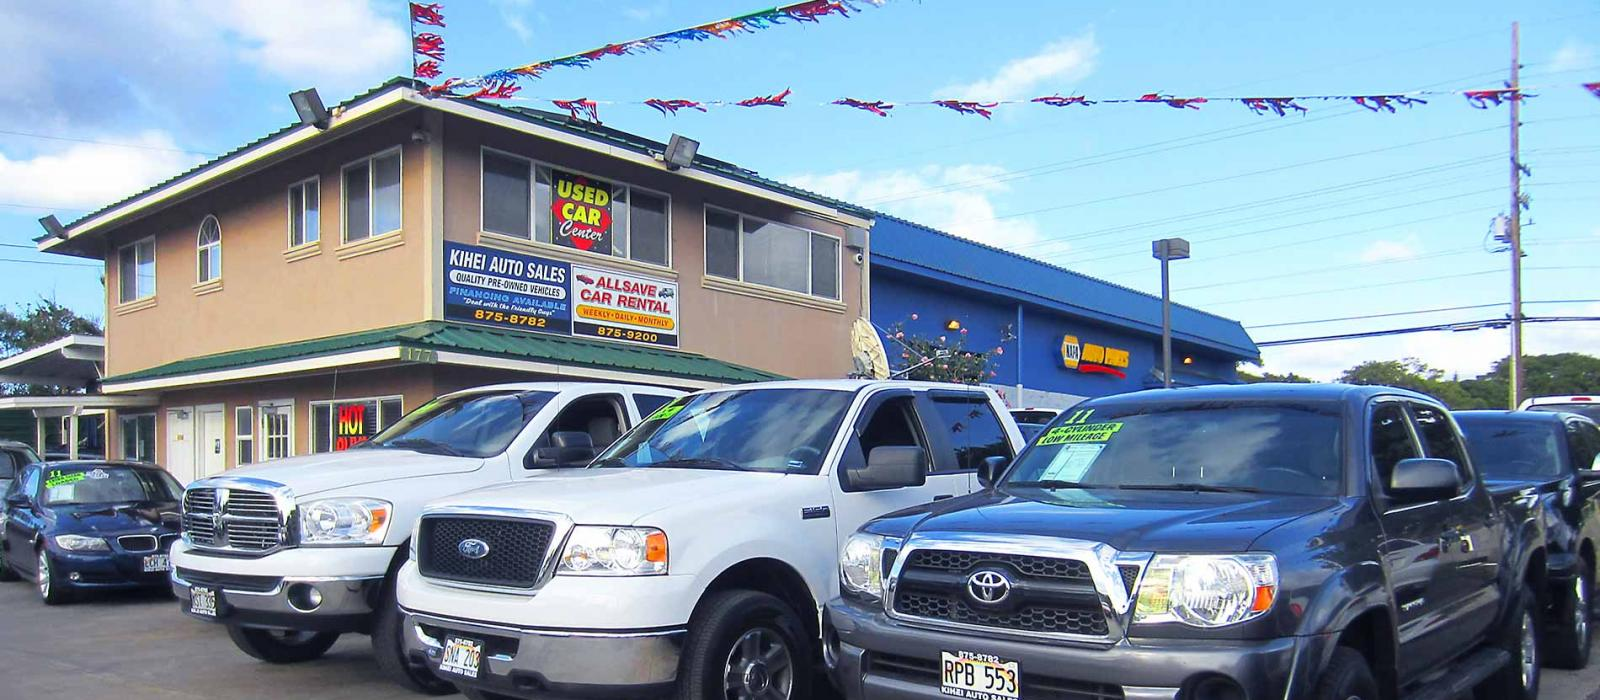 Kihei Auto Sales: Used Cars Maui Hawaii,Kahului HI Pre-Owned